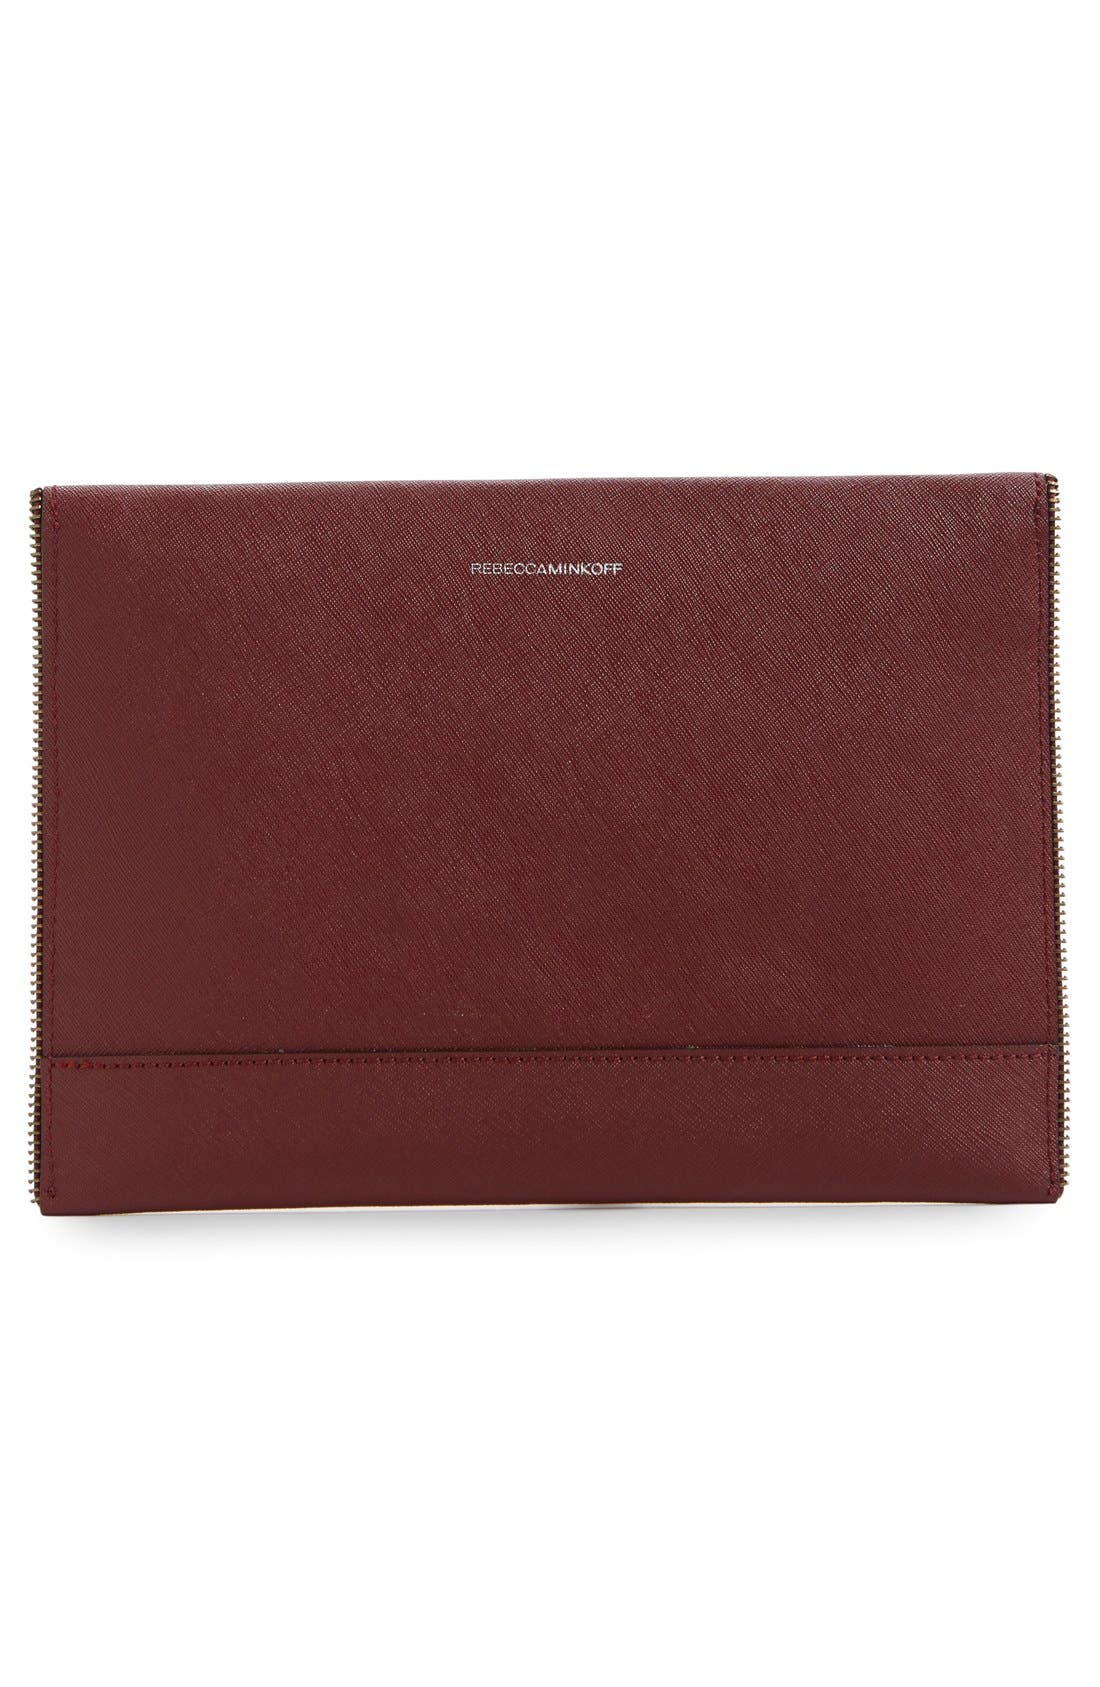 ,                             Leo Envelope Clutch,                             Alternate thumbnail 318, color,                             930